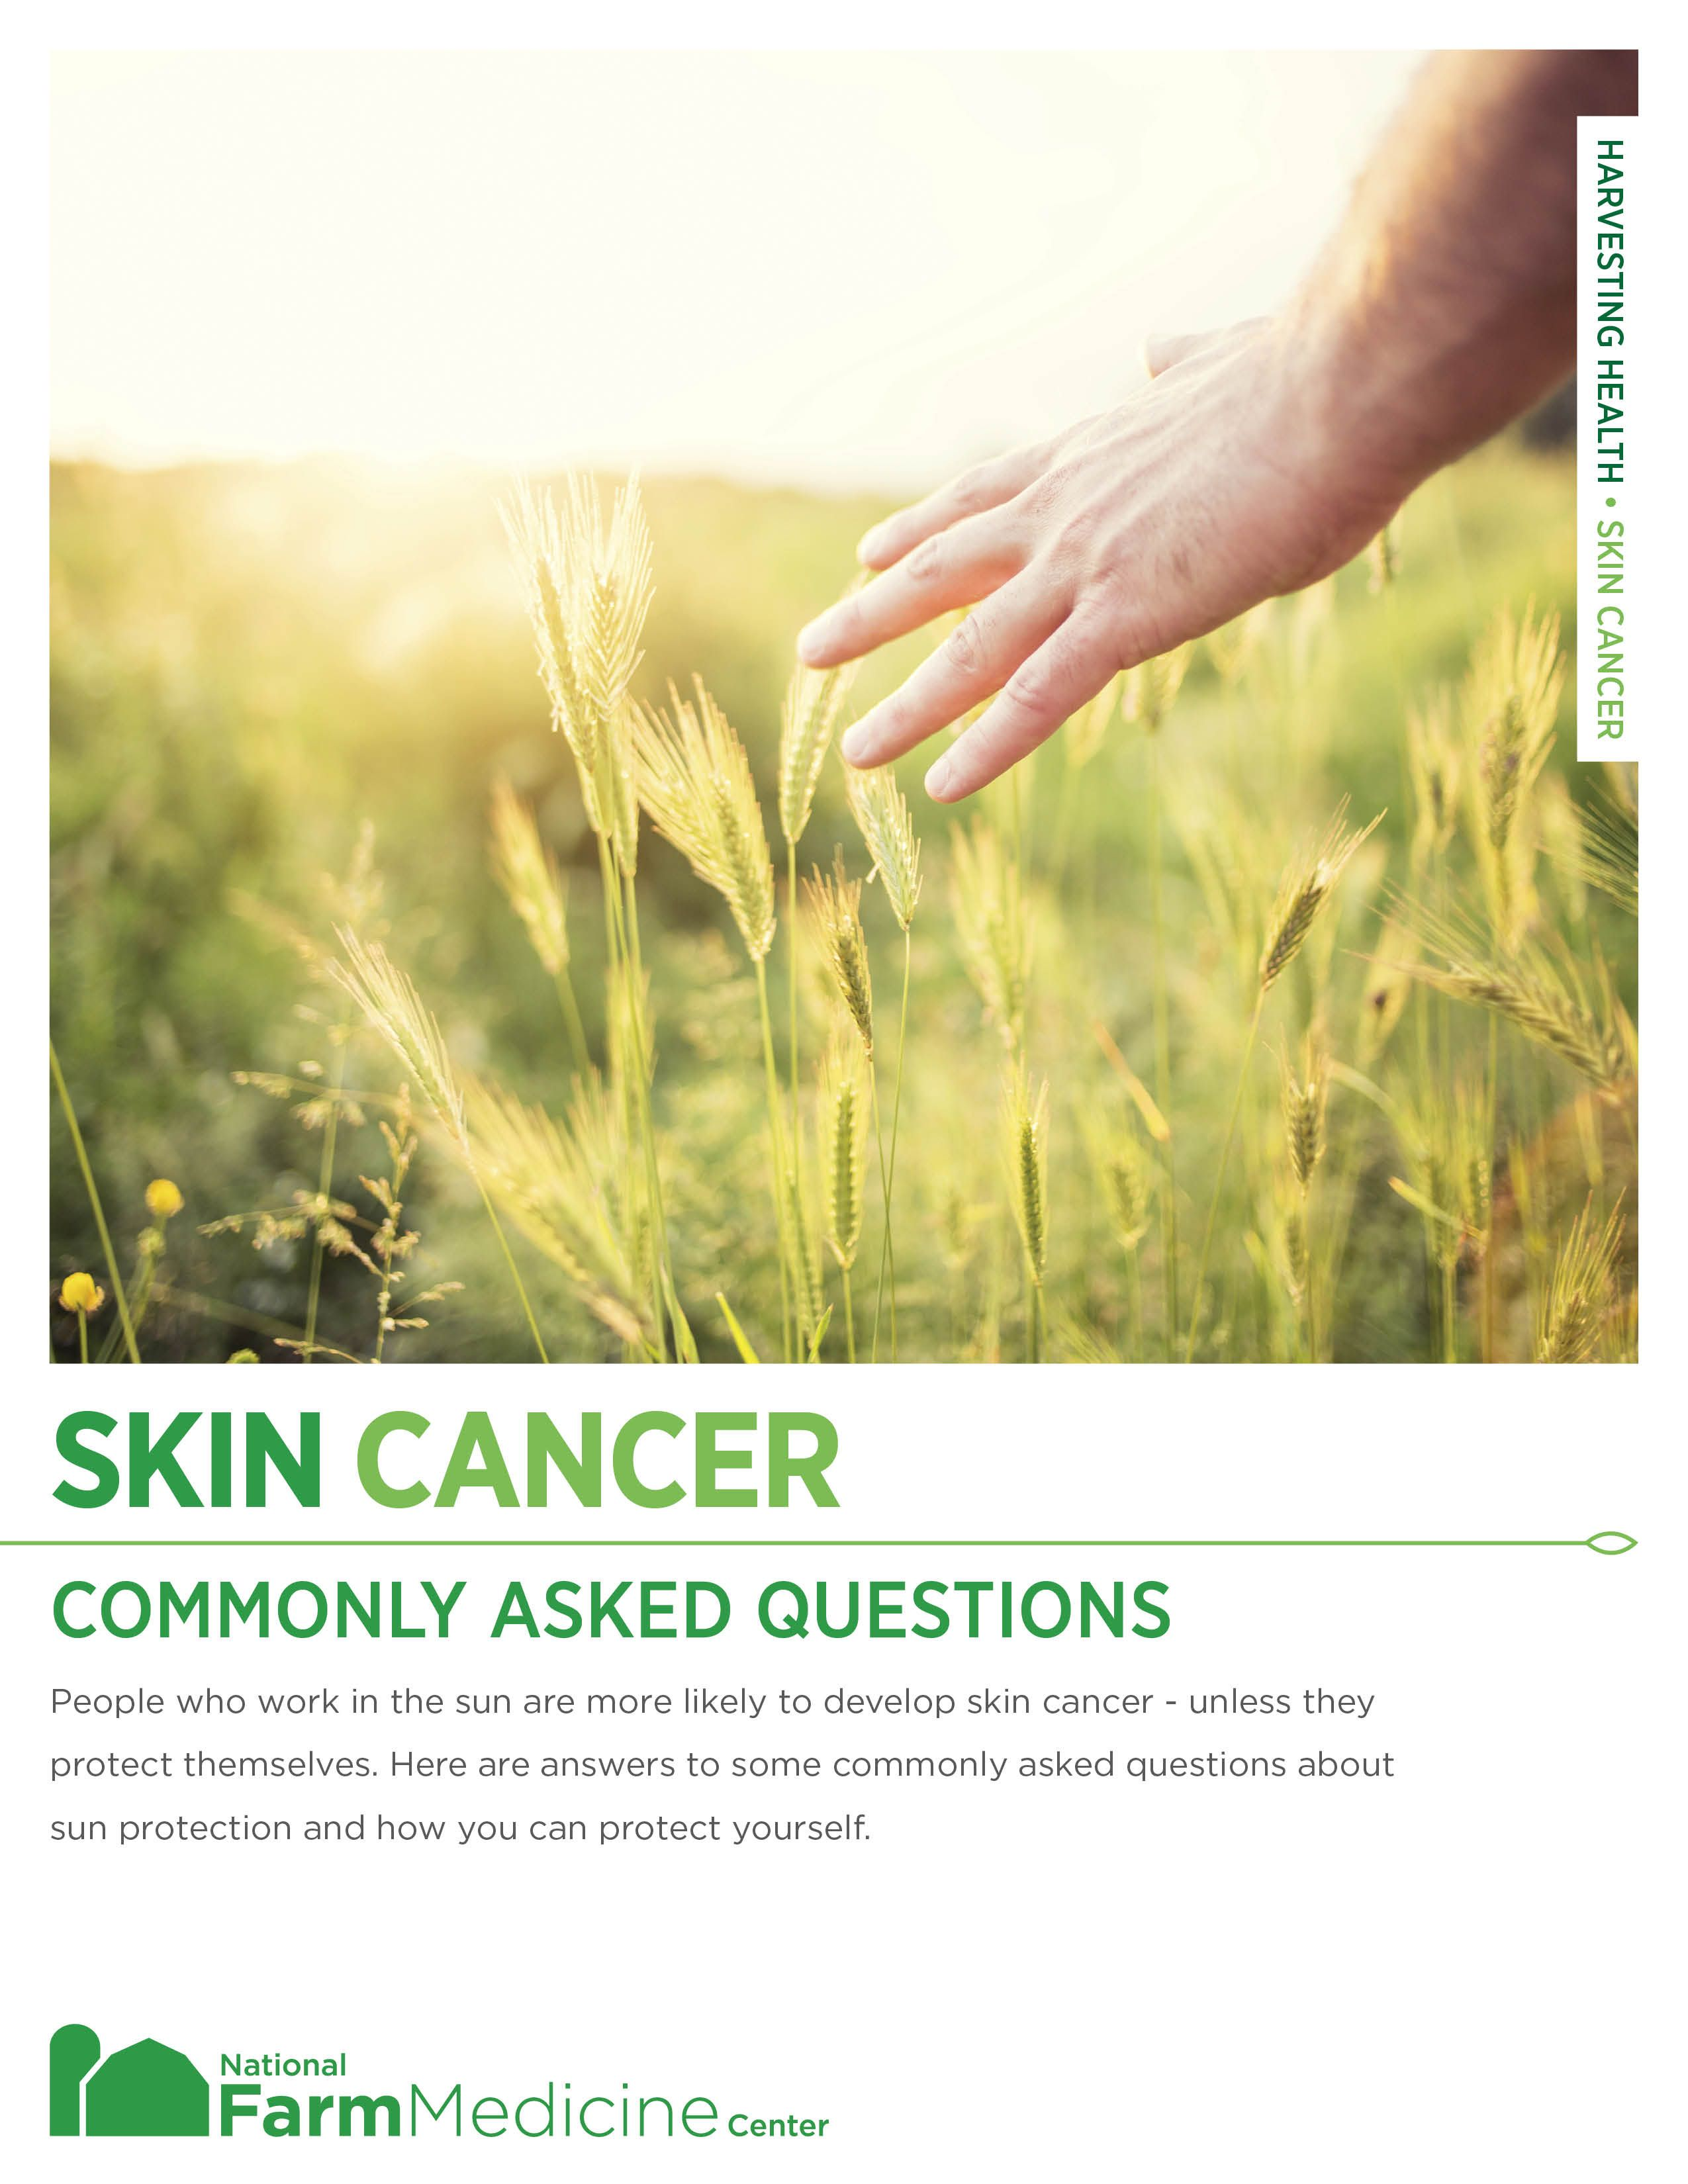 Pin by National Farm Medicine Center on Adult Health and